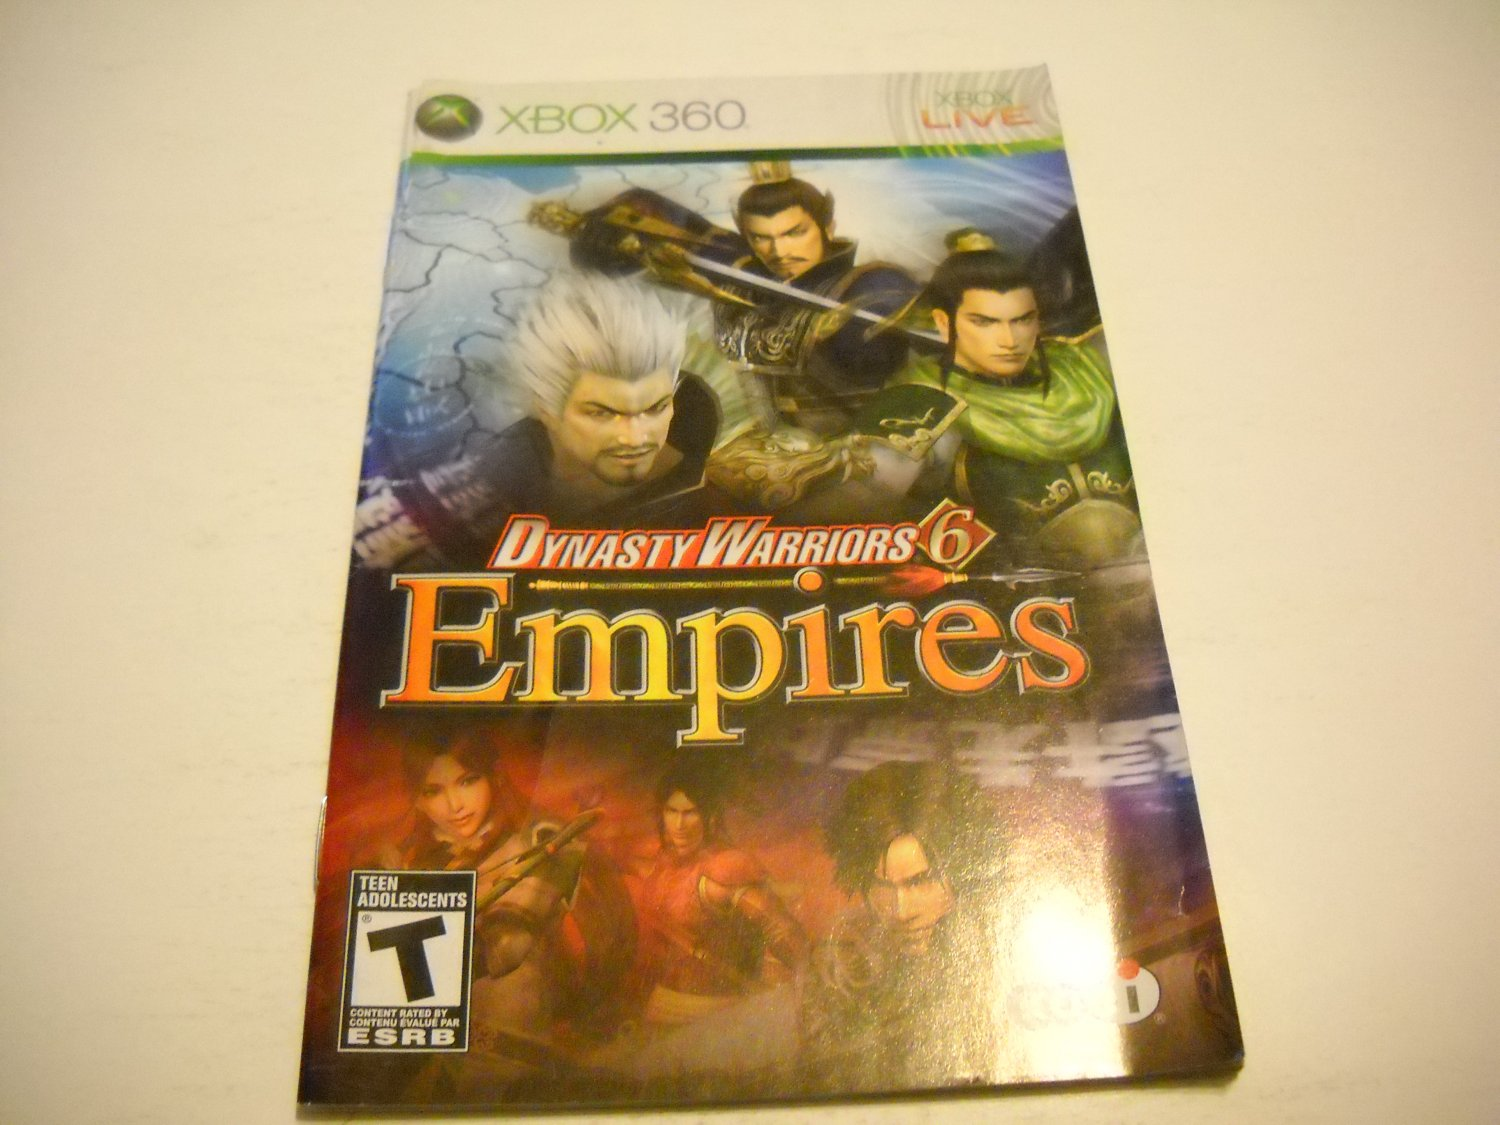 Manual ONLY ~  for Dynasty Warriors 6 Empires   - Xbox 360 Instruction Booklet